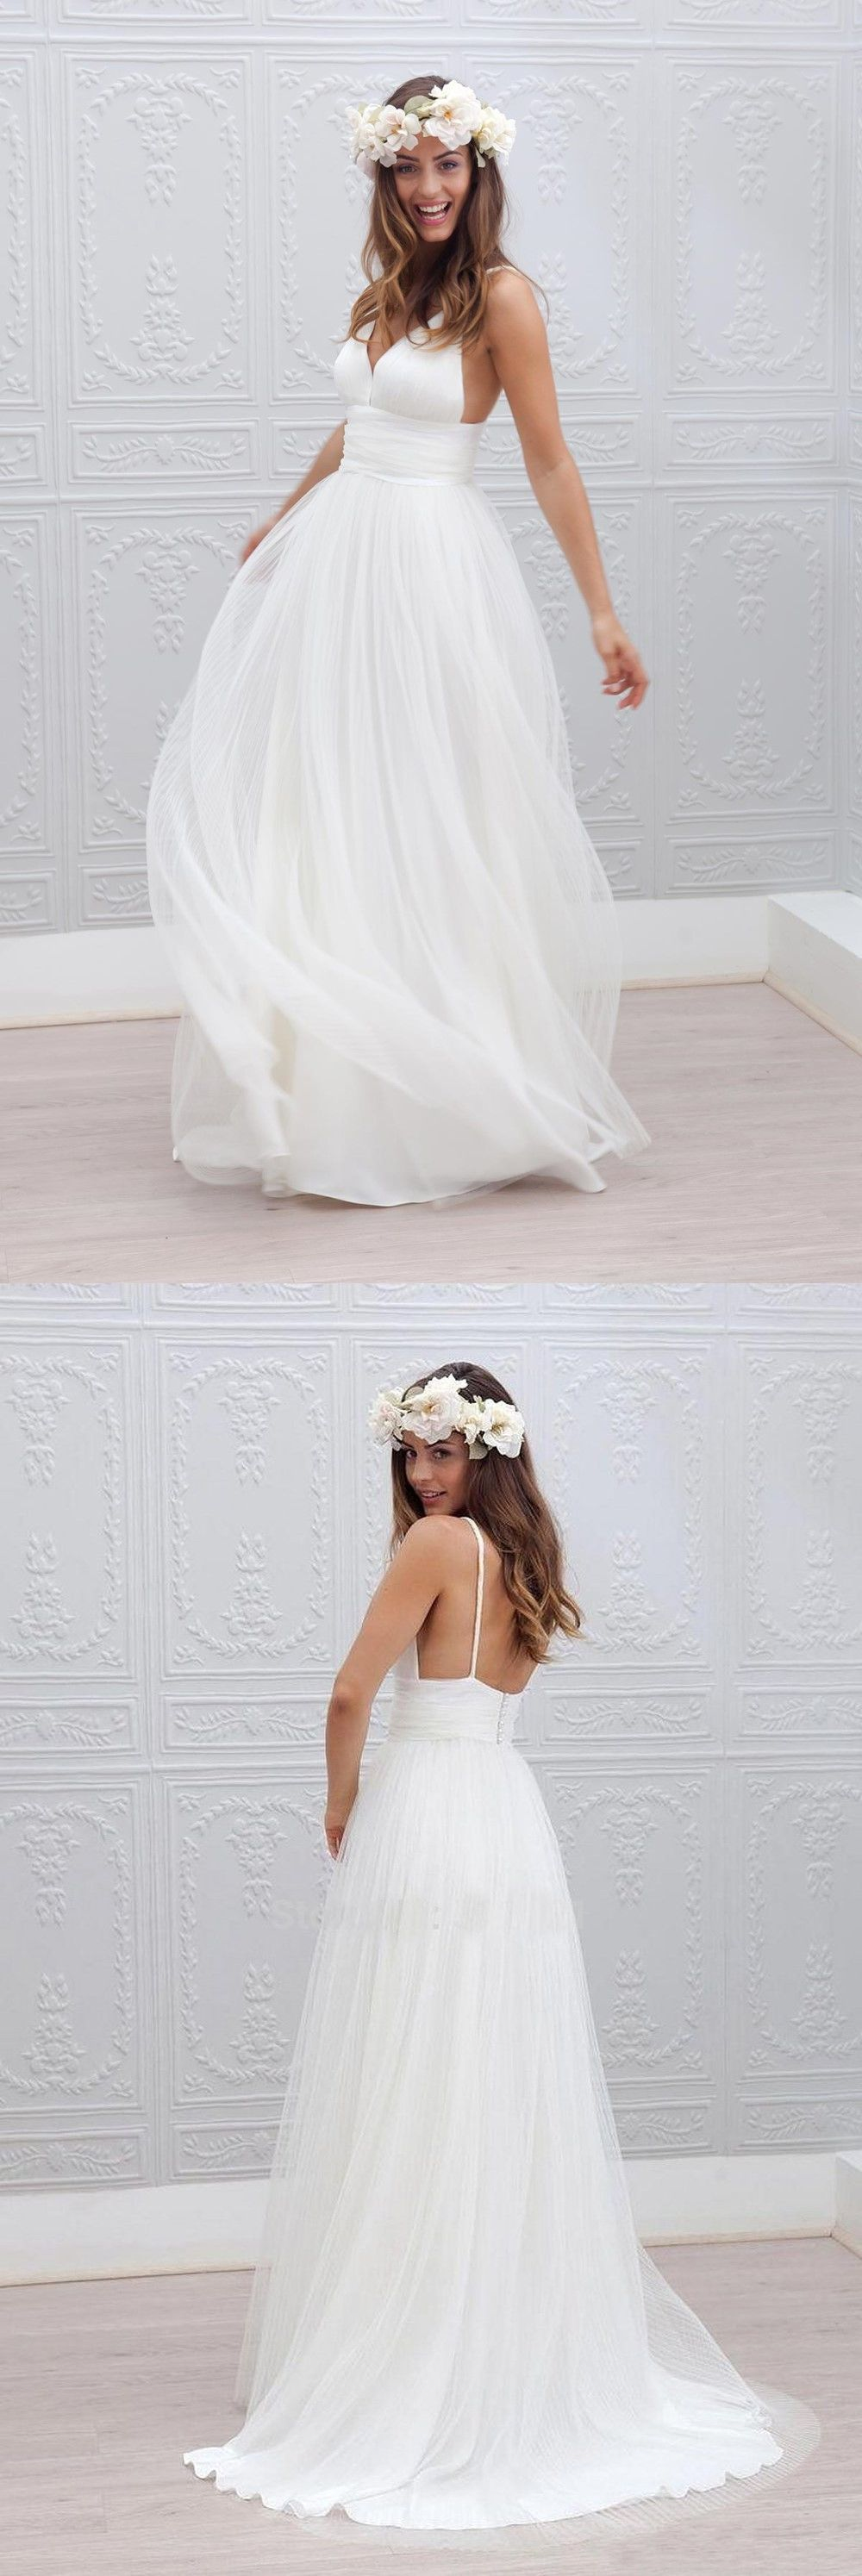 Beach Wedding Dresses Made to Perfection